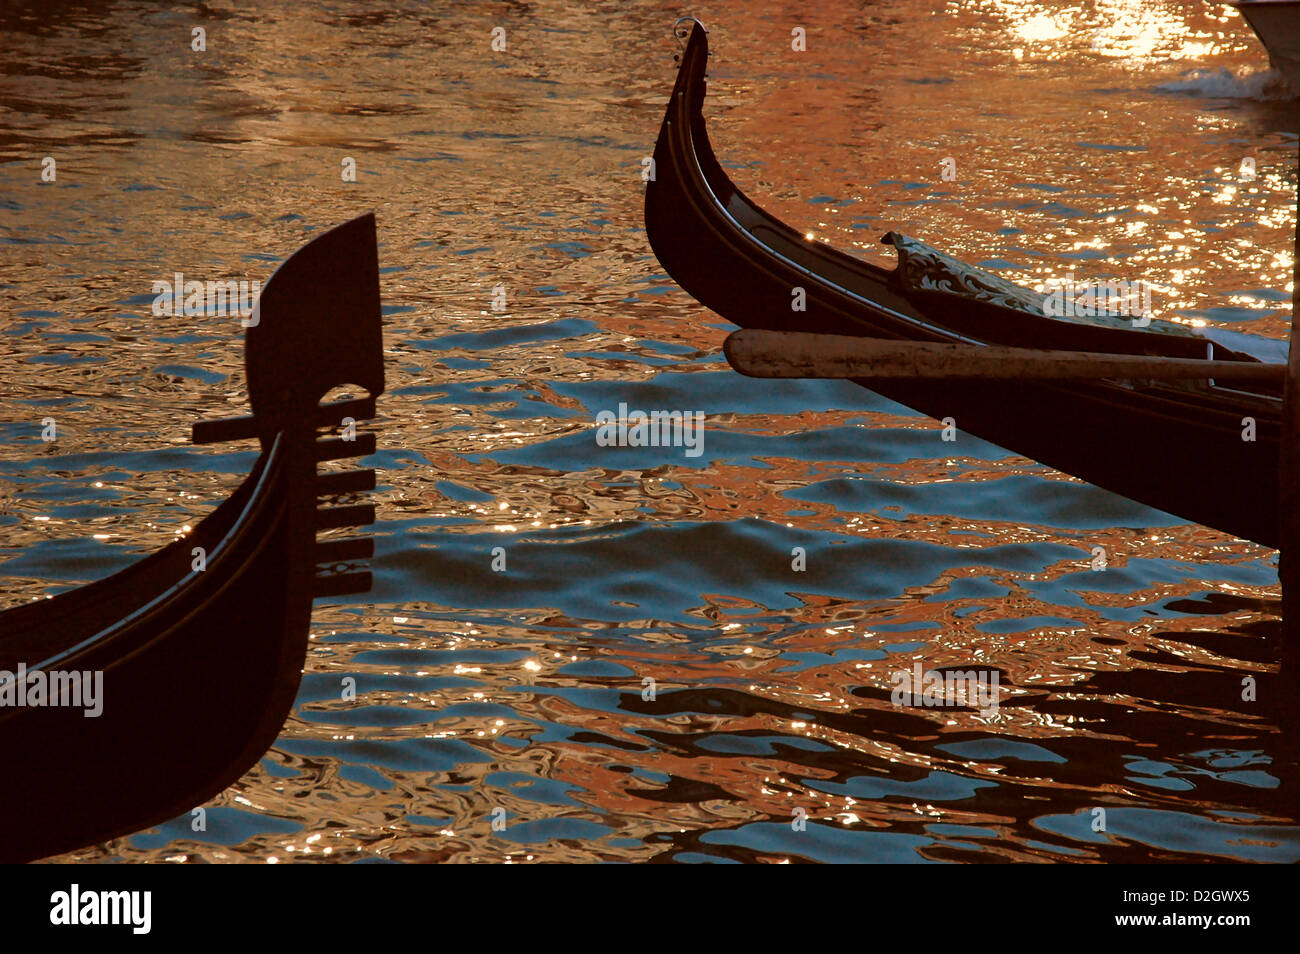 dc51b428d53 The bow and stern of two gondolas in Venice at sunset with golden light  reflecting of